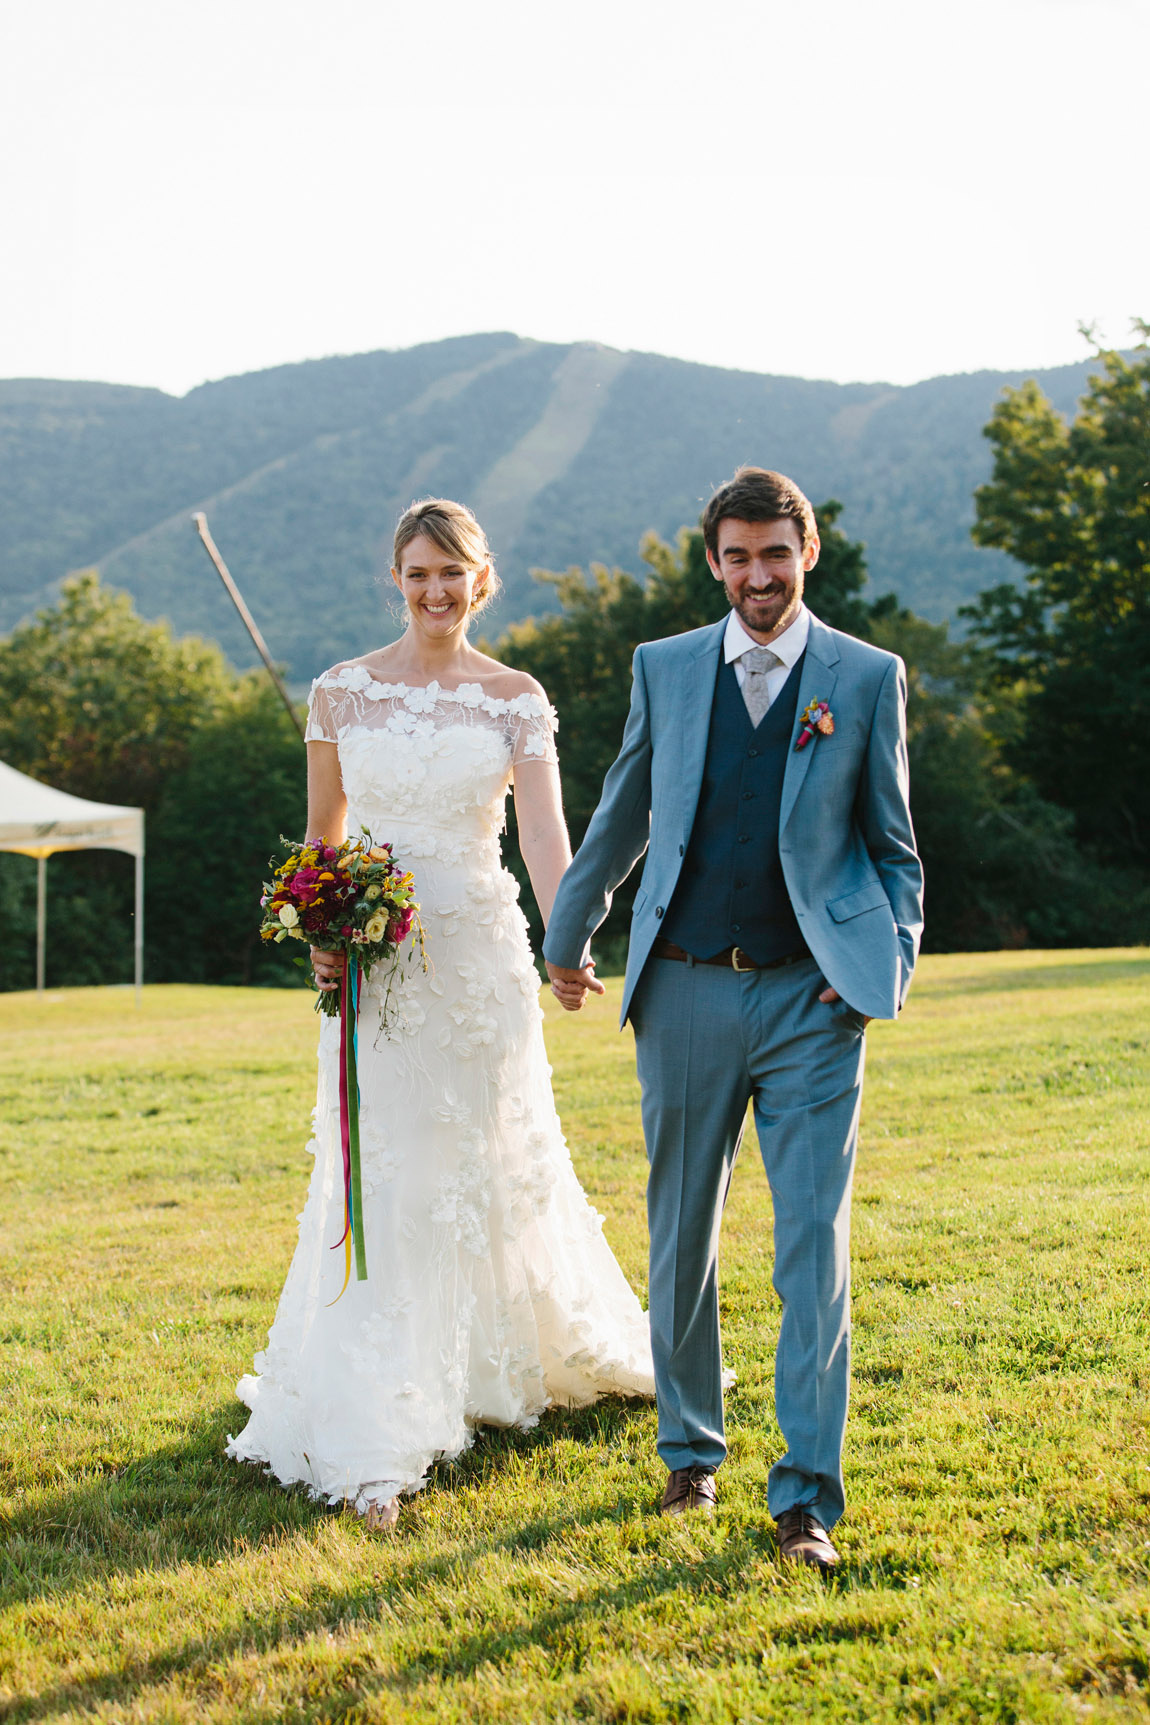 Wedding Gown and Jacket of Embroidered Netting